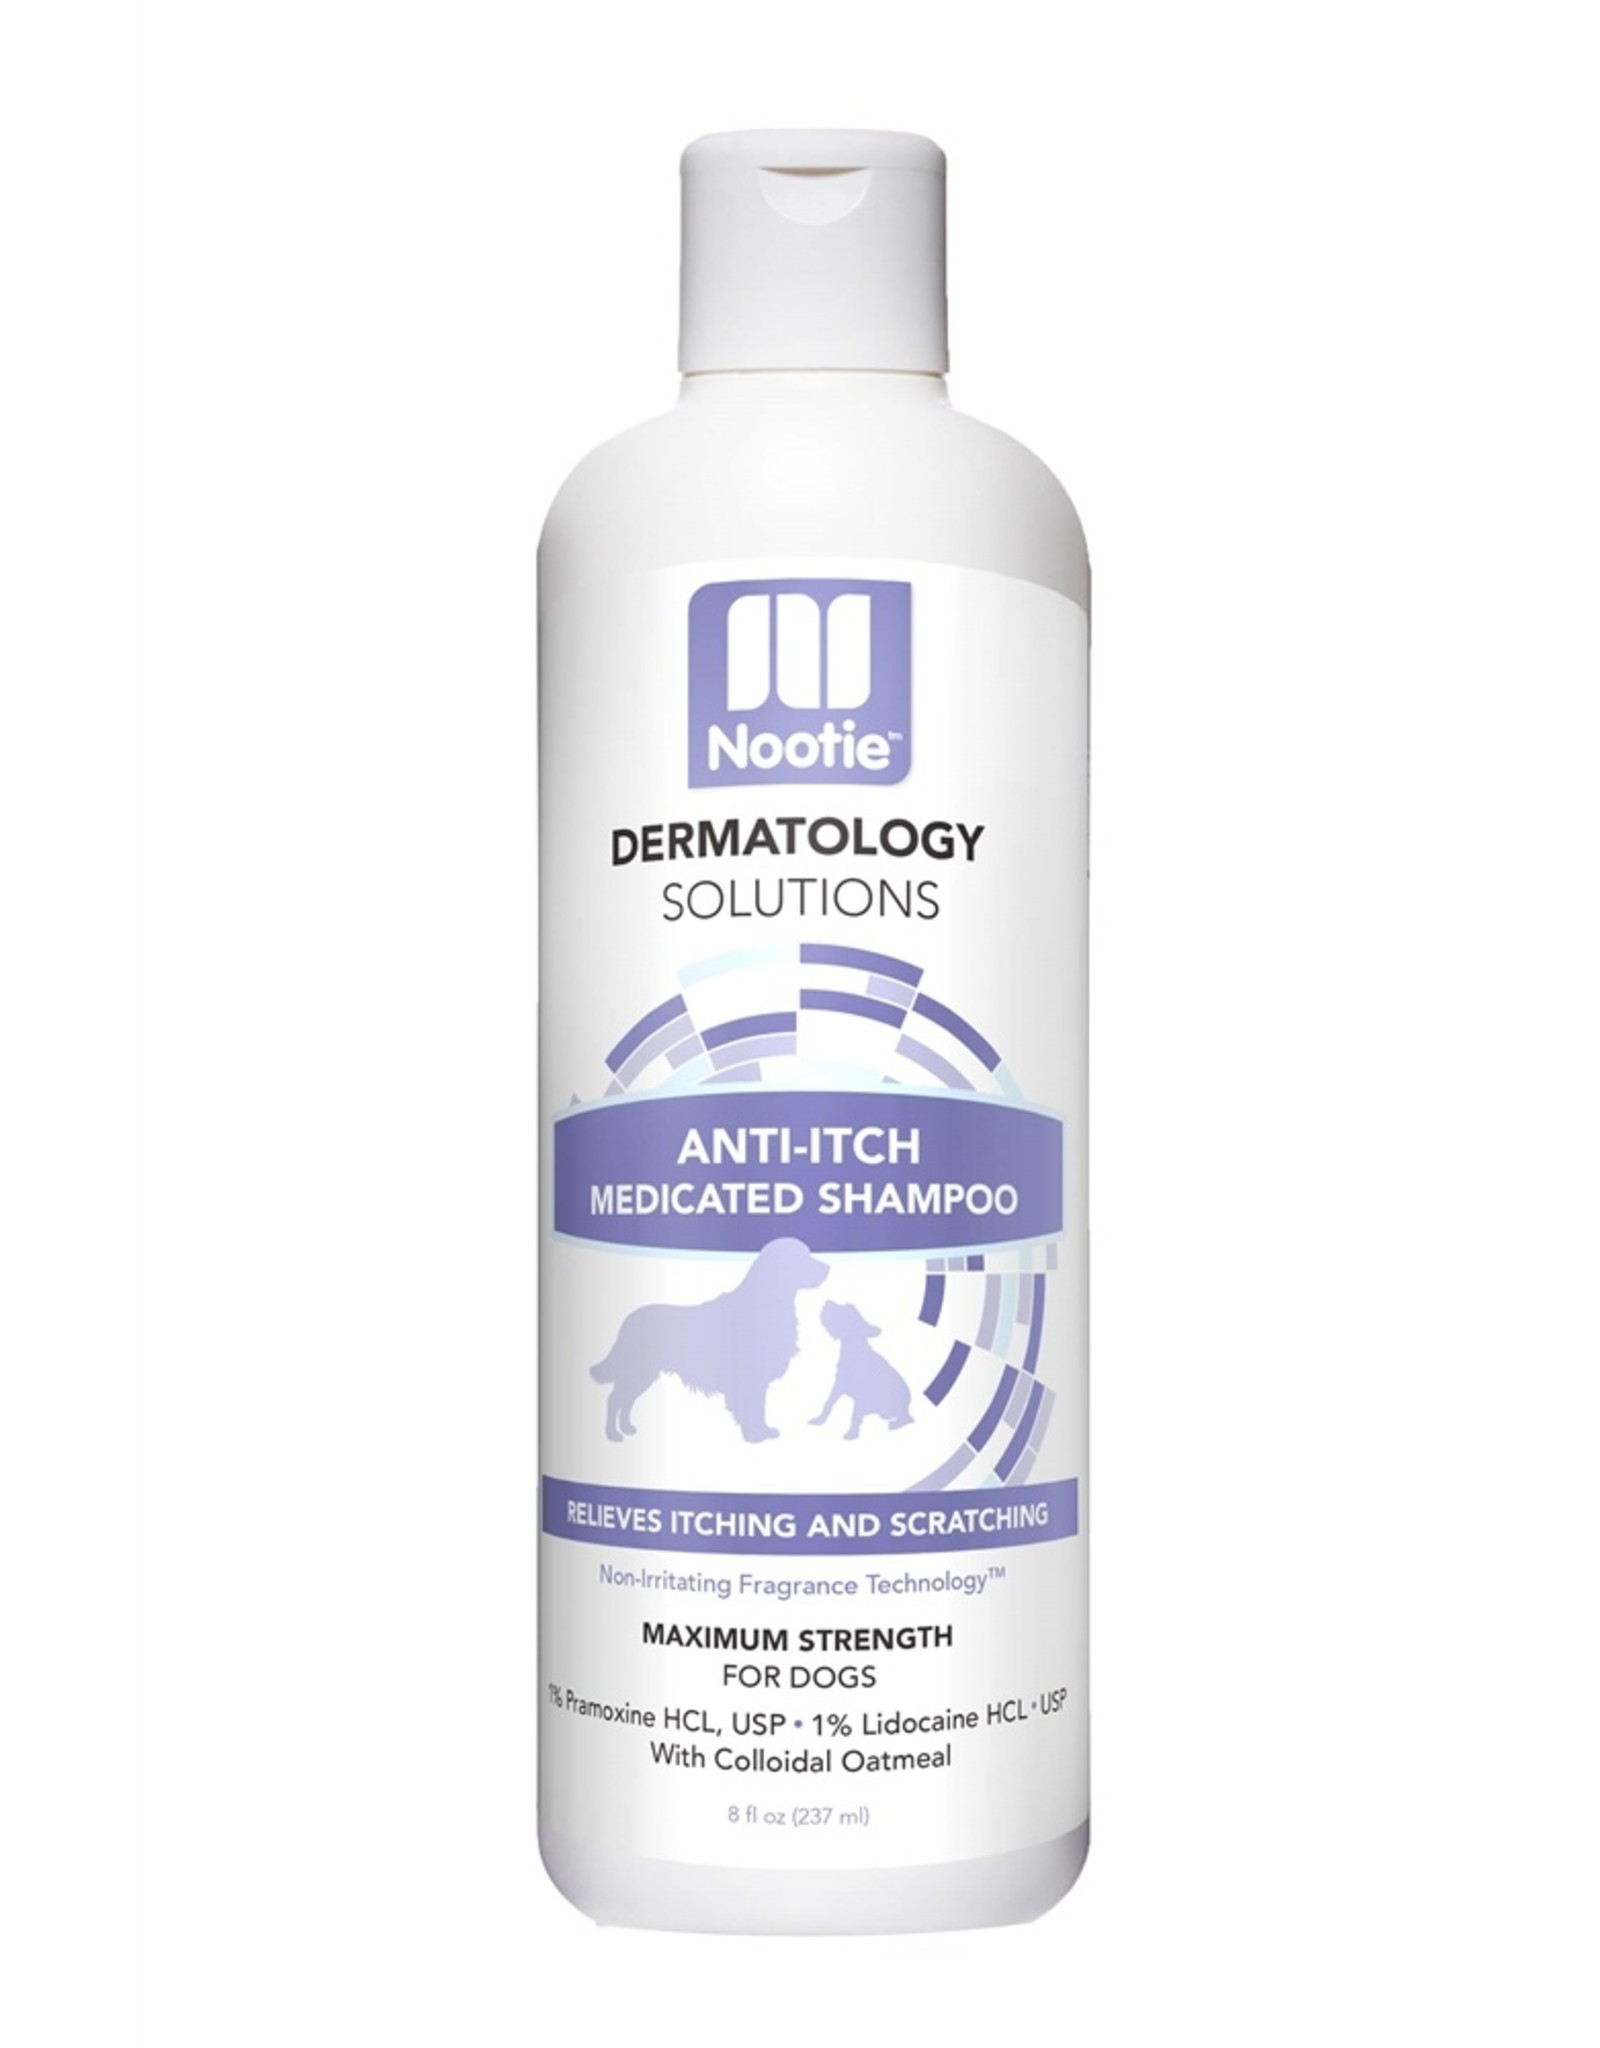 Nootie Nootie Dermatology Solutions Anti-Itch Medicated Shampoo Cucumber Melon 8oz